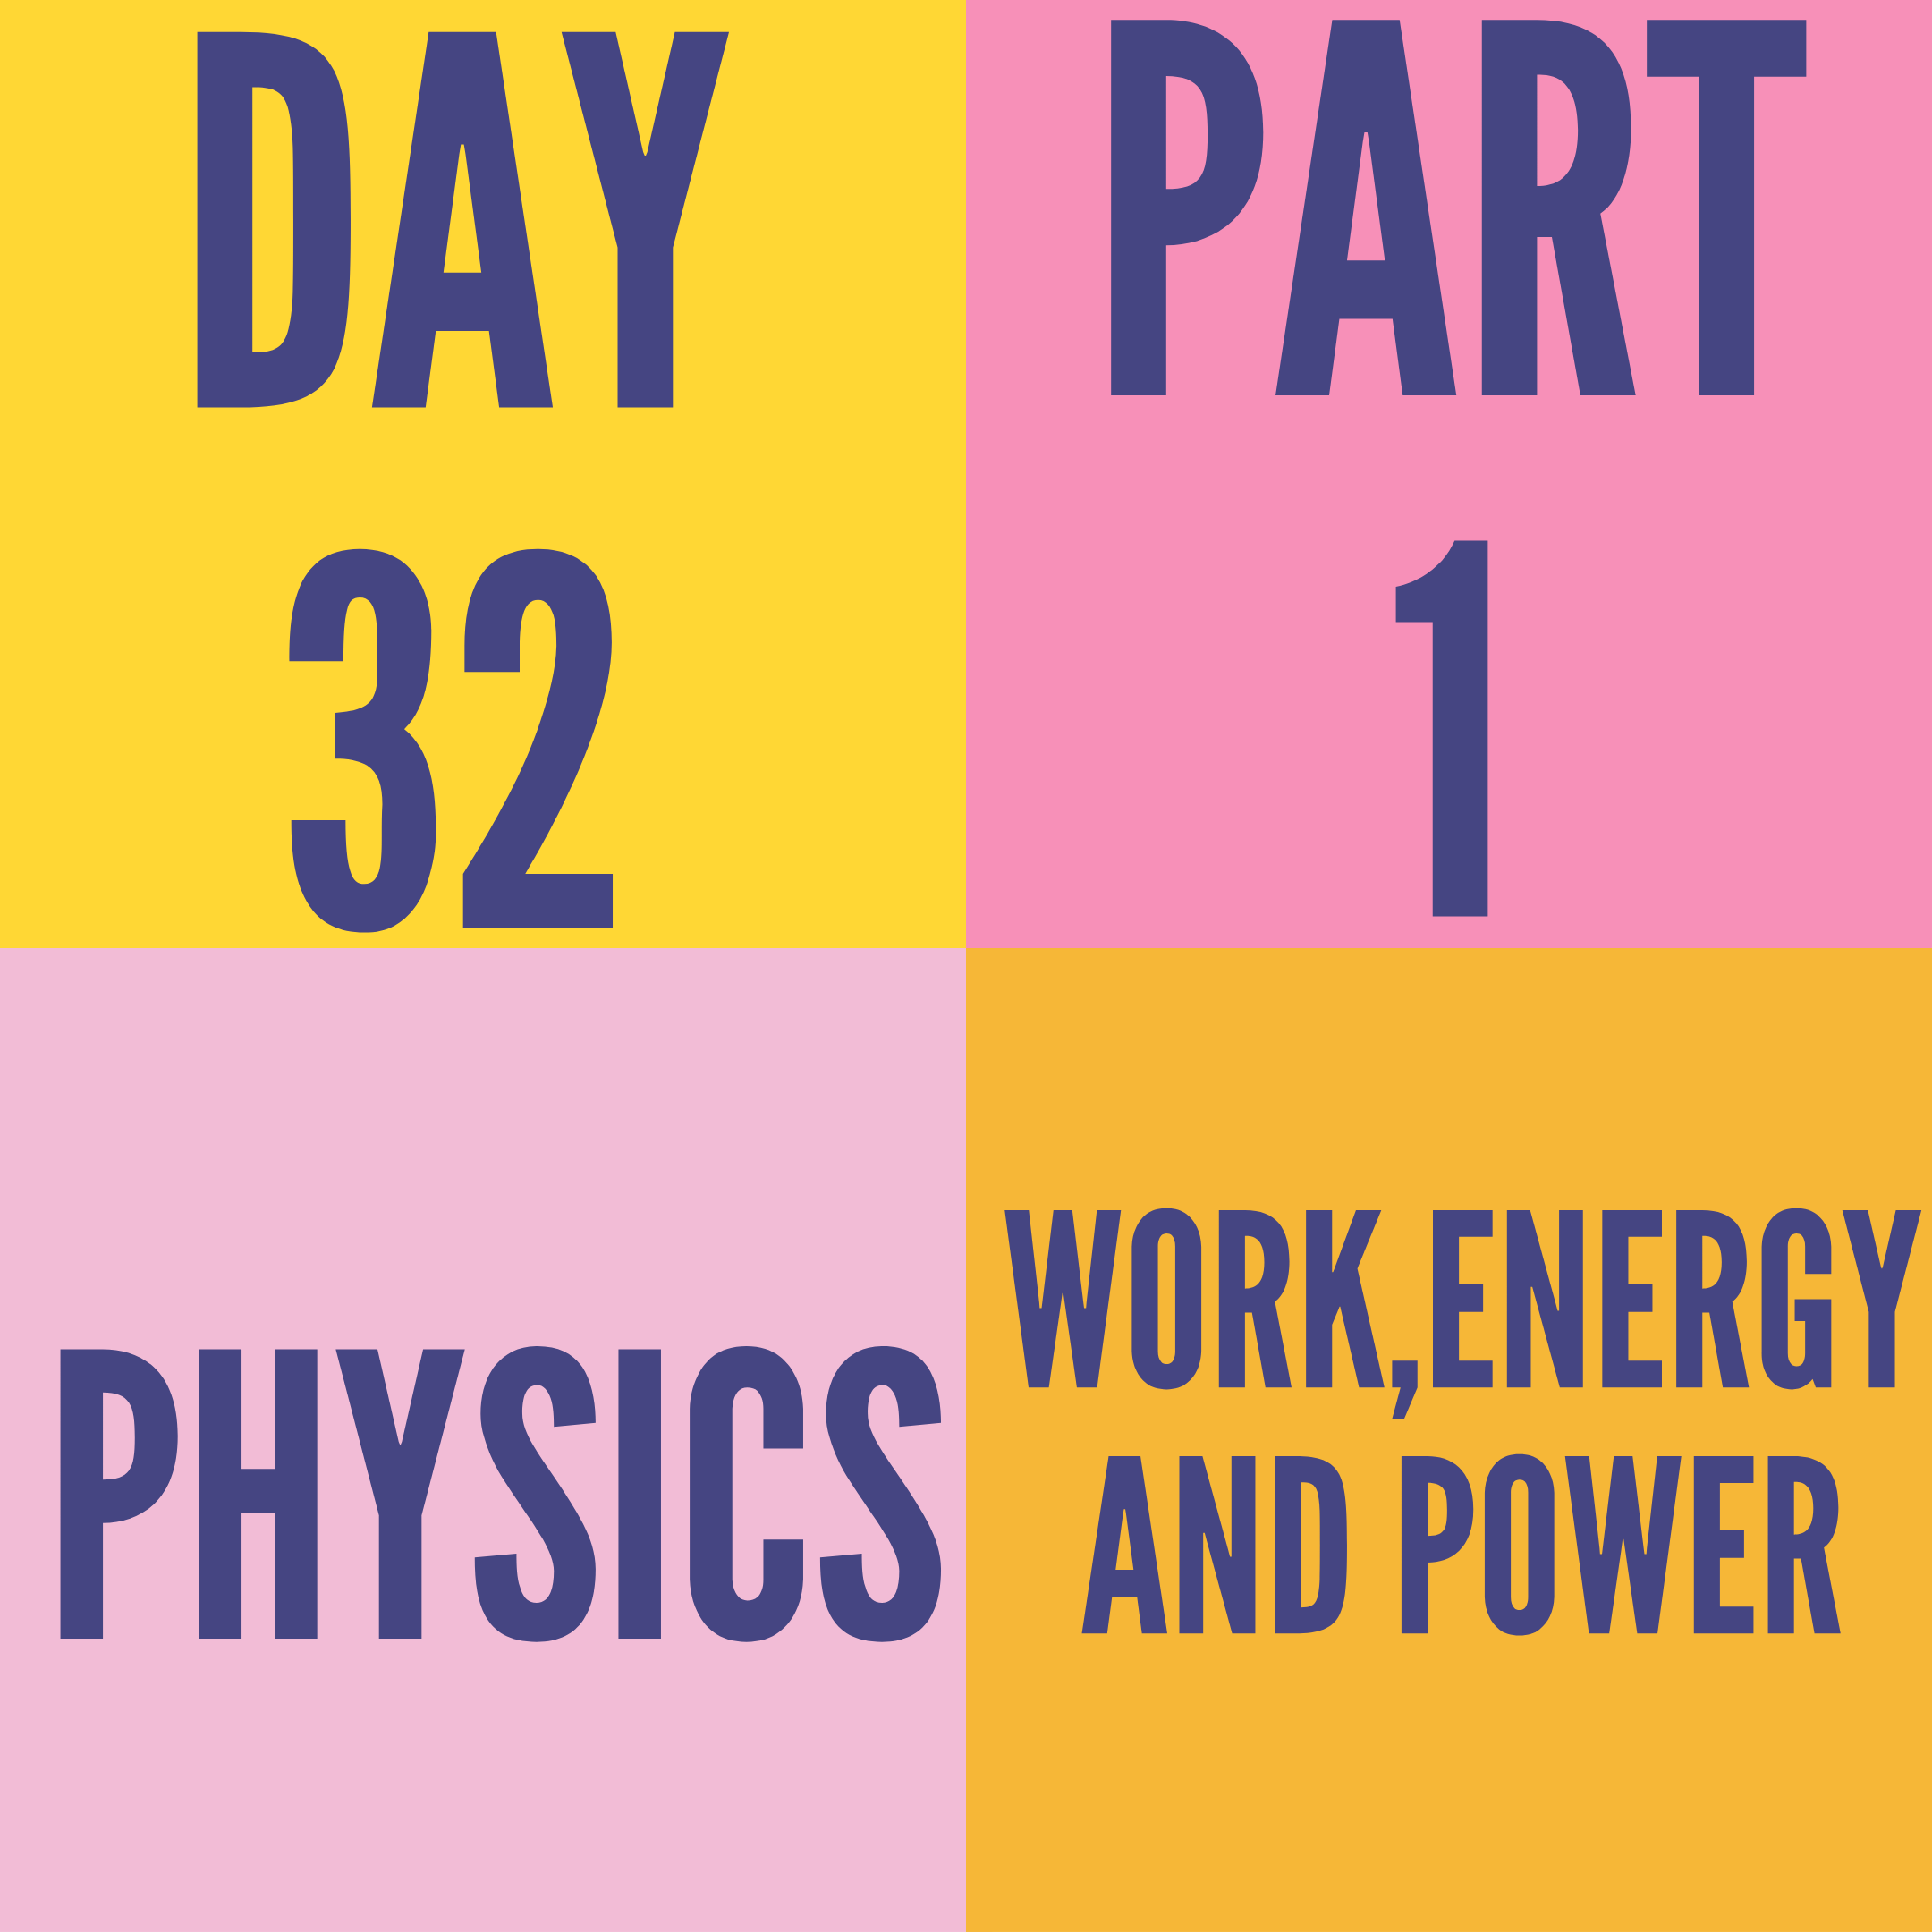 DAY-32 PART-1 WORK,ENERGY AND POWER